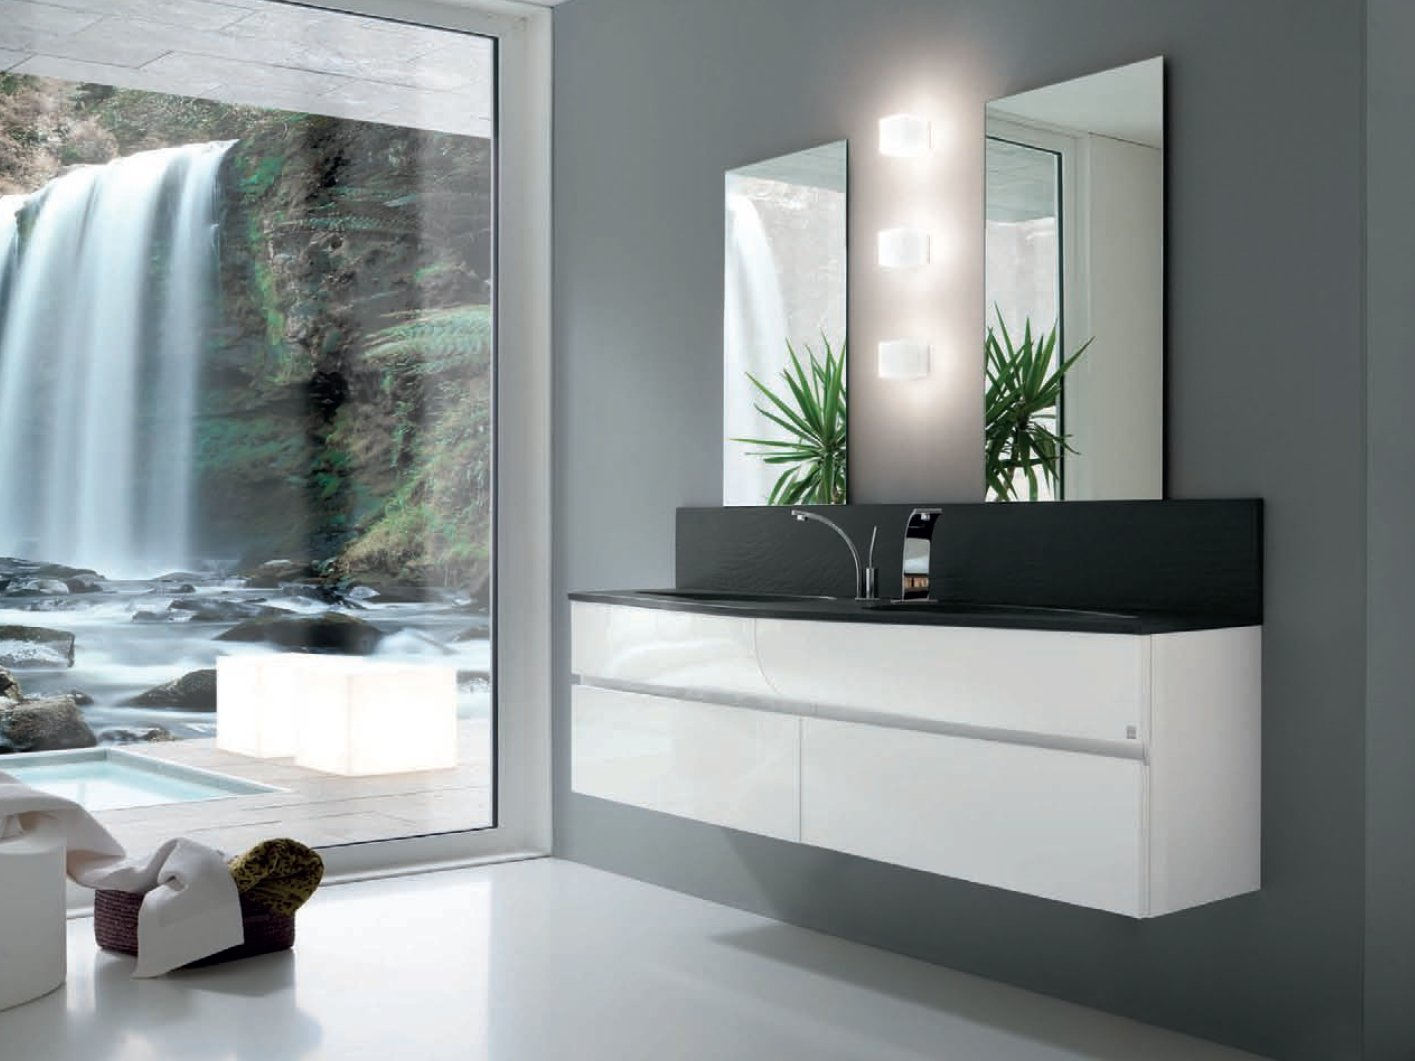 Meuble sous vasque simple ab 7020 collection wave by rab for Decouvrir salle de bain